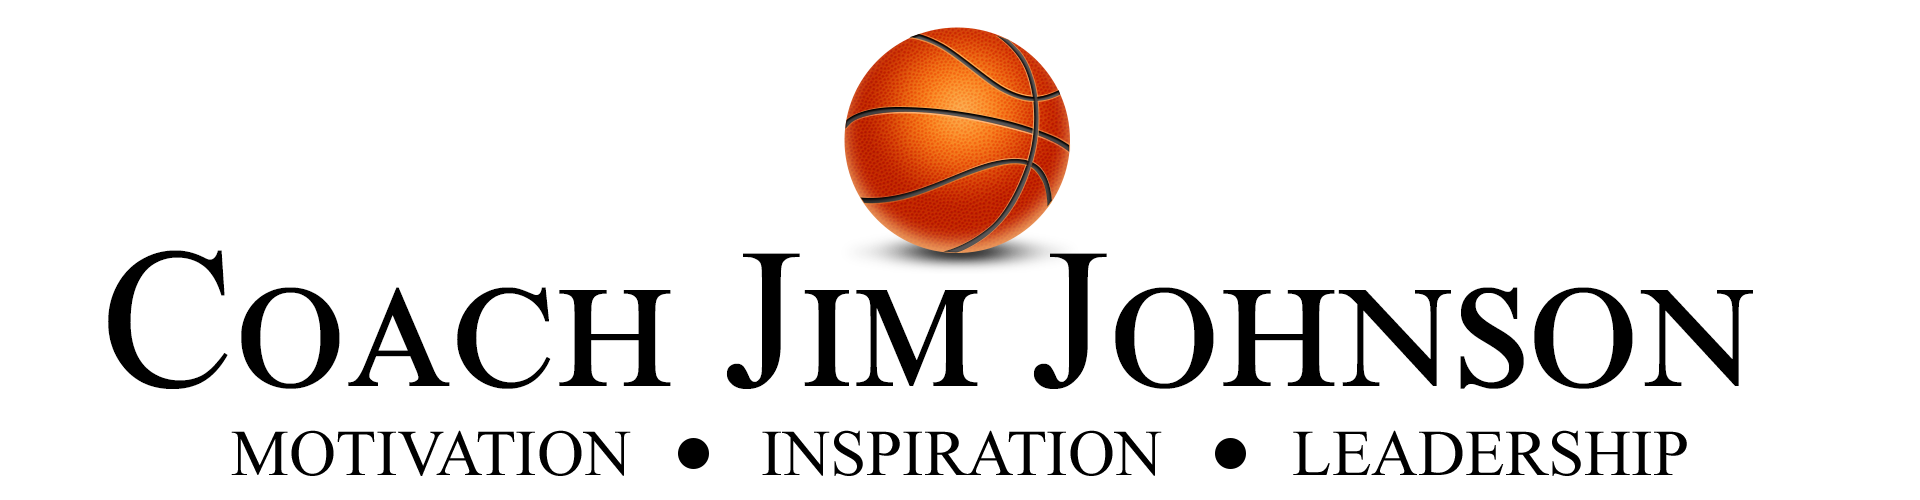 Coach Jim Johnson A Coach and a Miracle Motivational Speaker Inspirational Coach